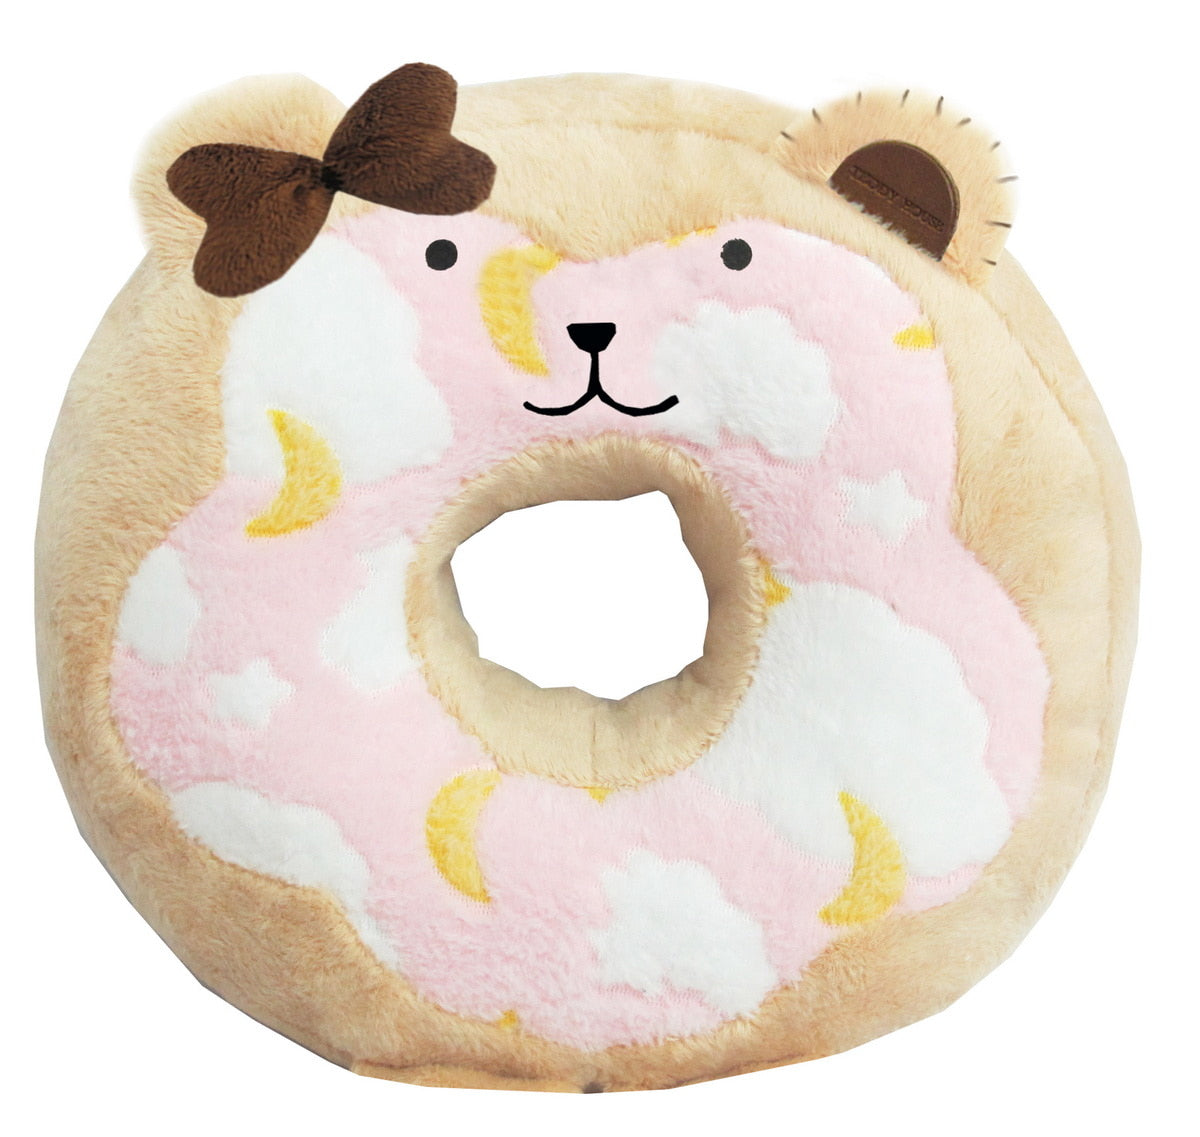 DOUGHNUT CUSHION 12 INCHI X 12 INCHI